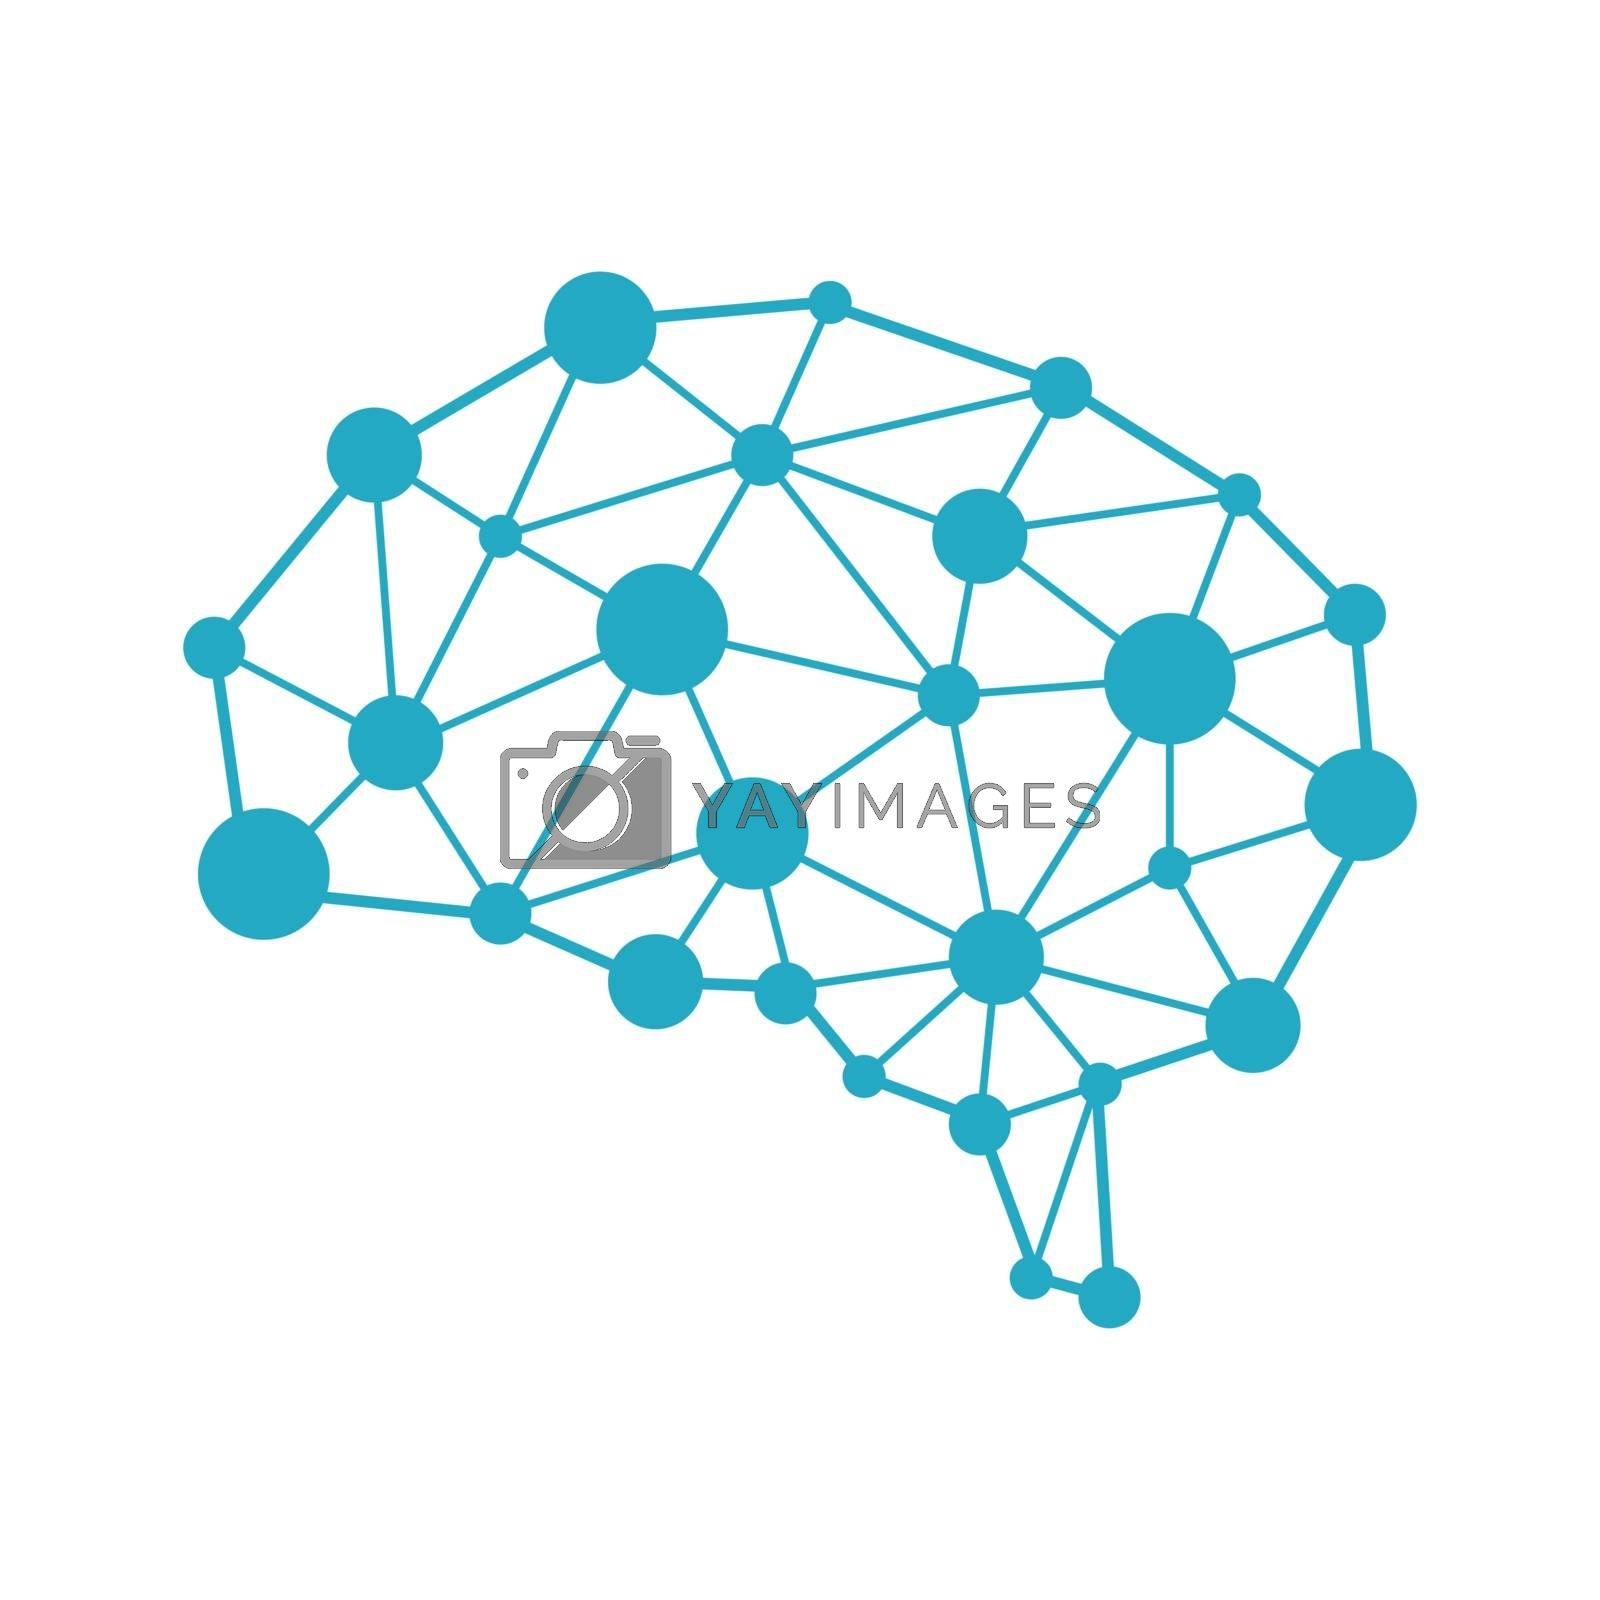 Royalty free image of AI ( artificial intelligence ) image illustration. by barks